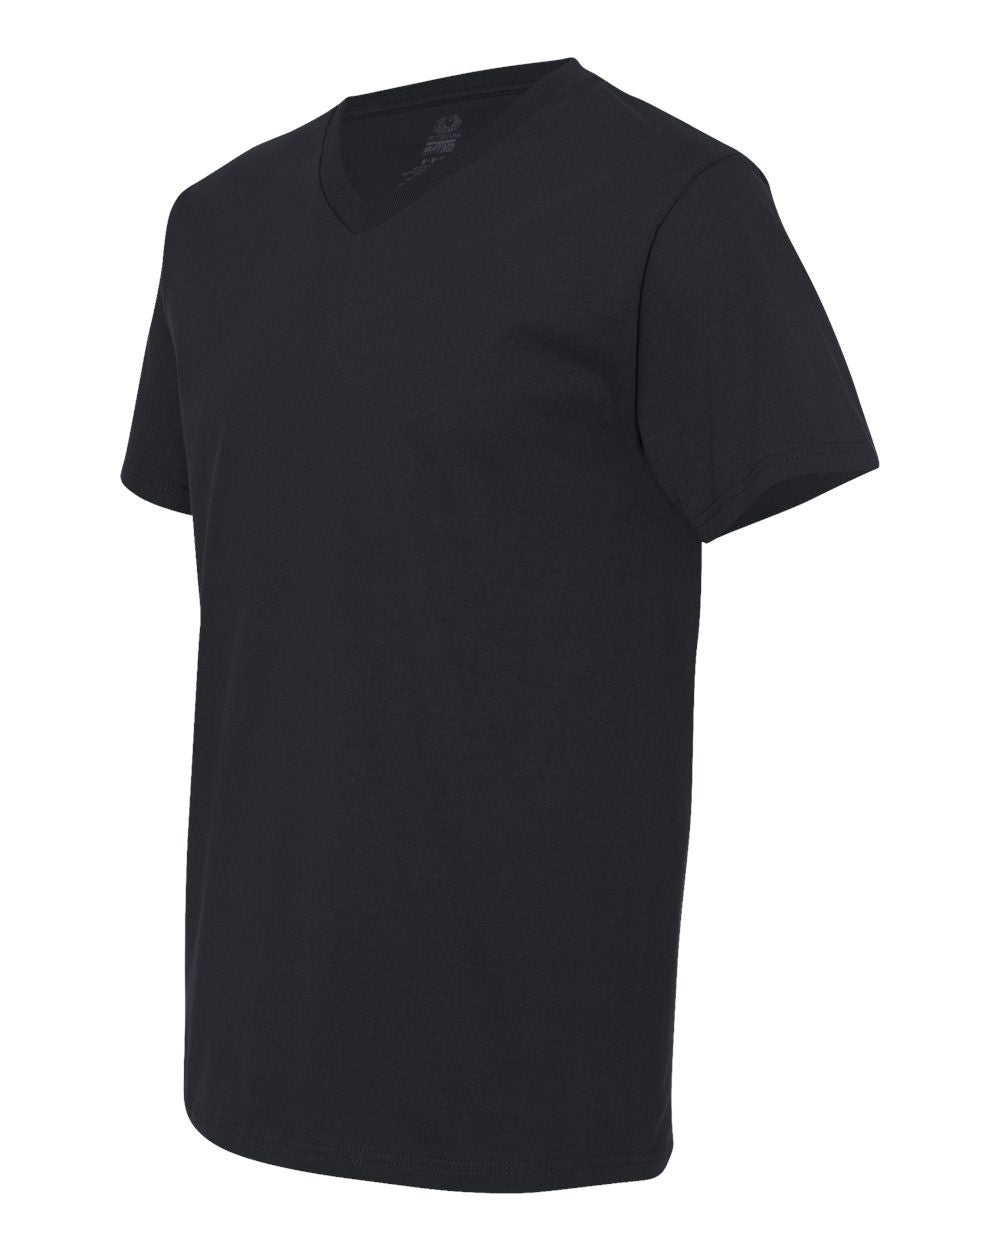 V Neck T-shirts by Fruit of the Loom